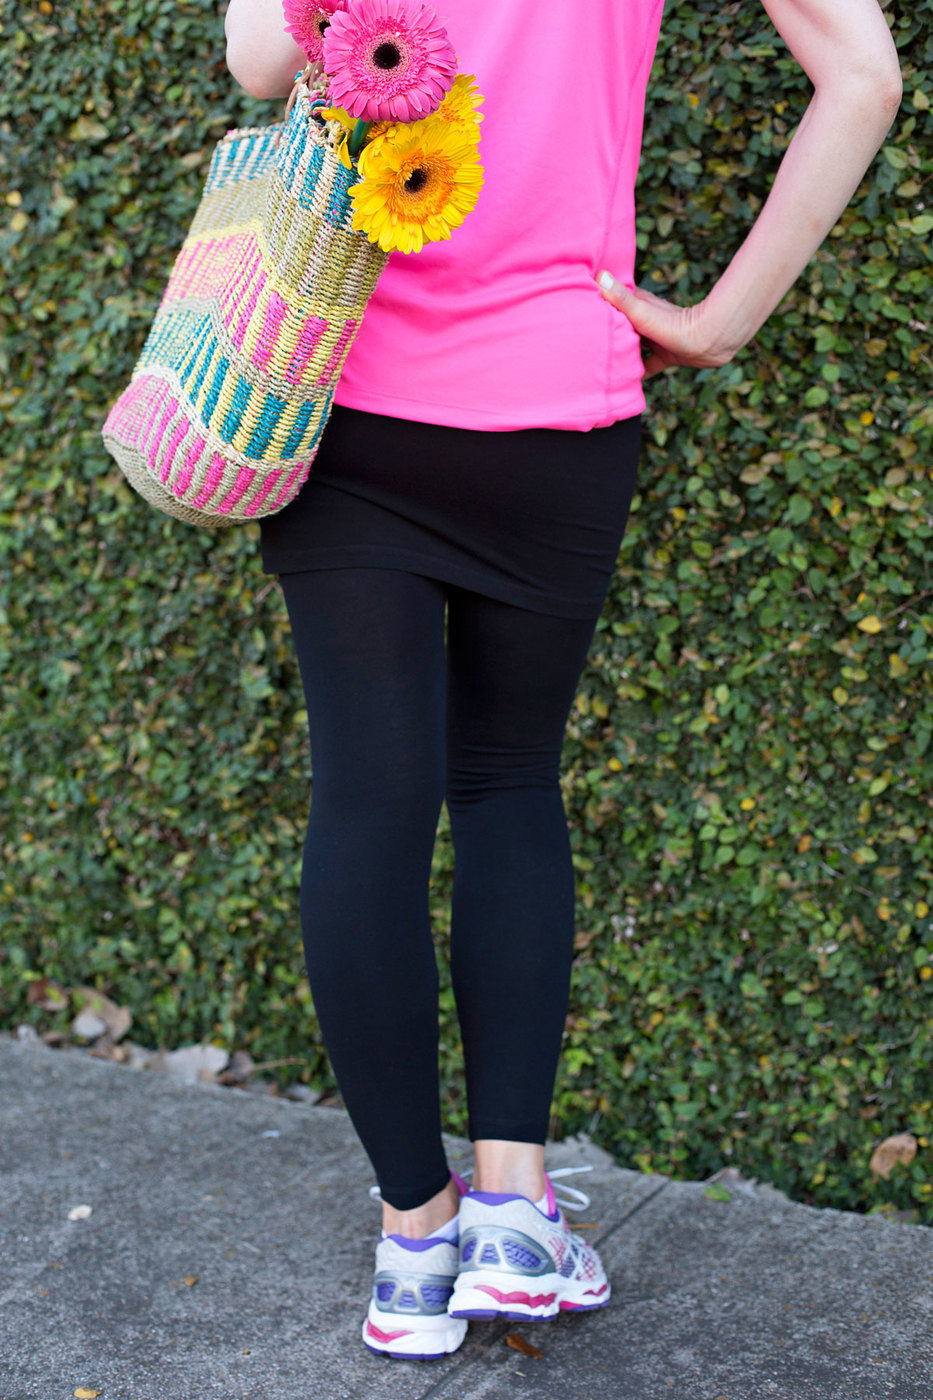 skirted leggings, leggings with skirts, skirted capris, capris with skirts, modest workout apparel, athleisure, athleisure wear, empty nester